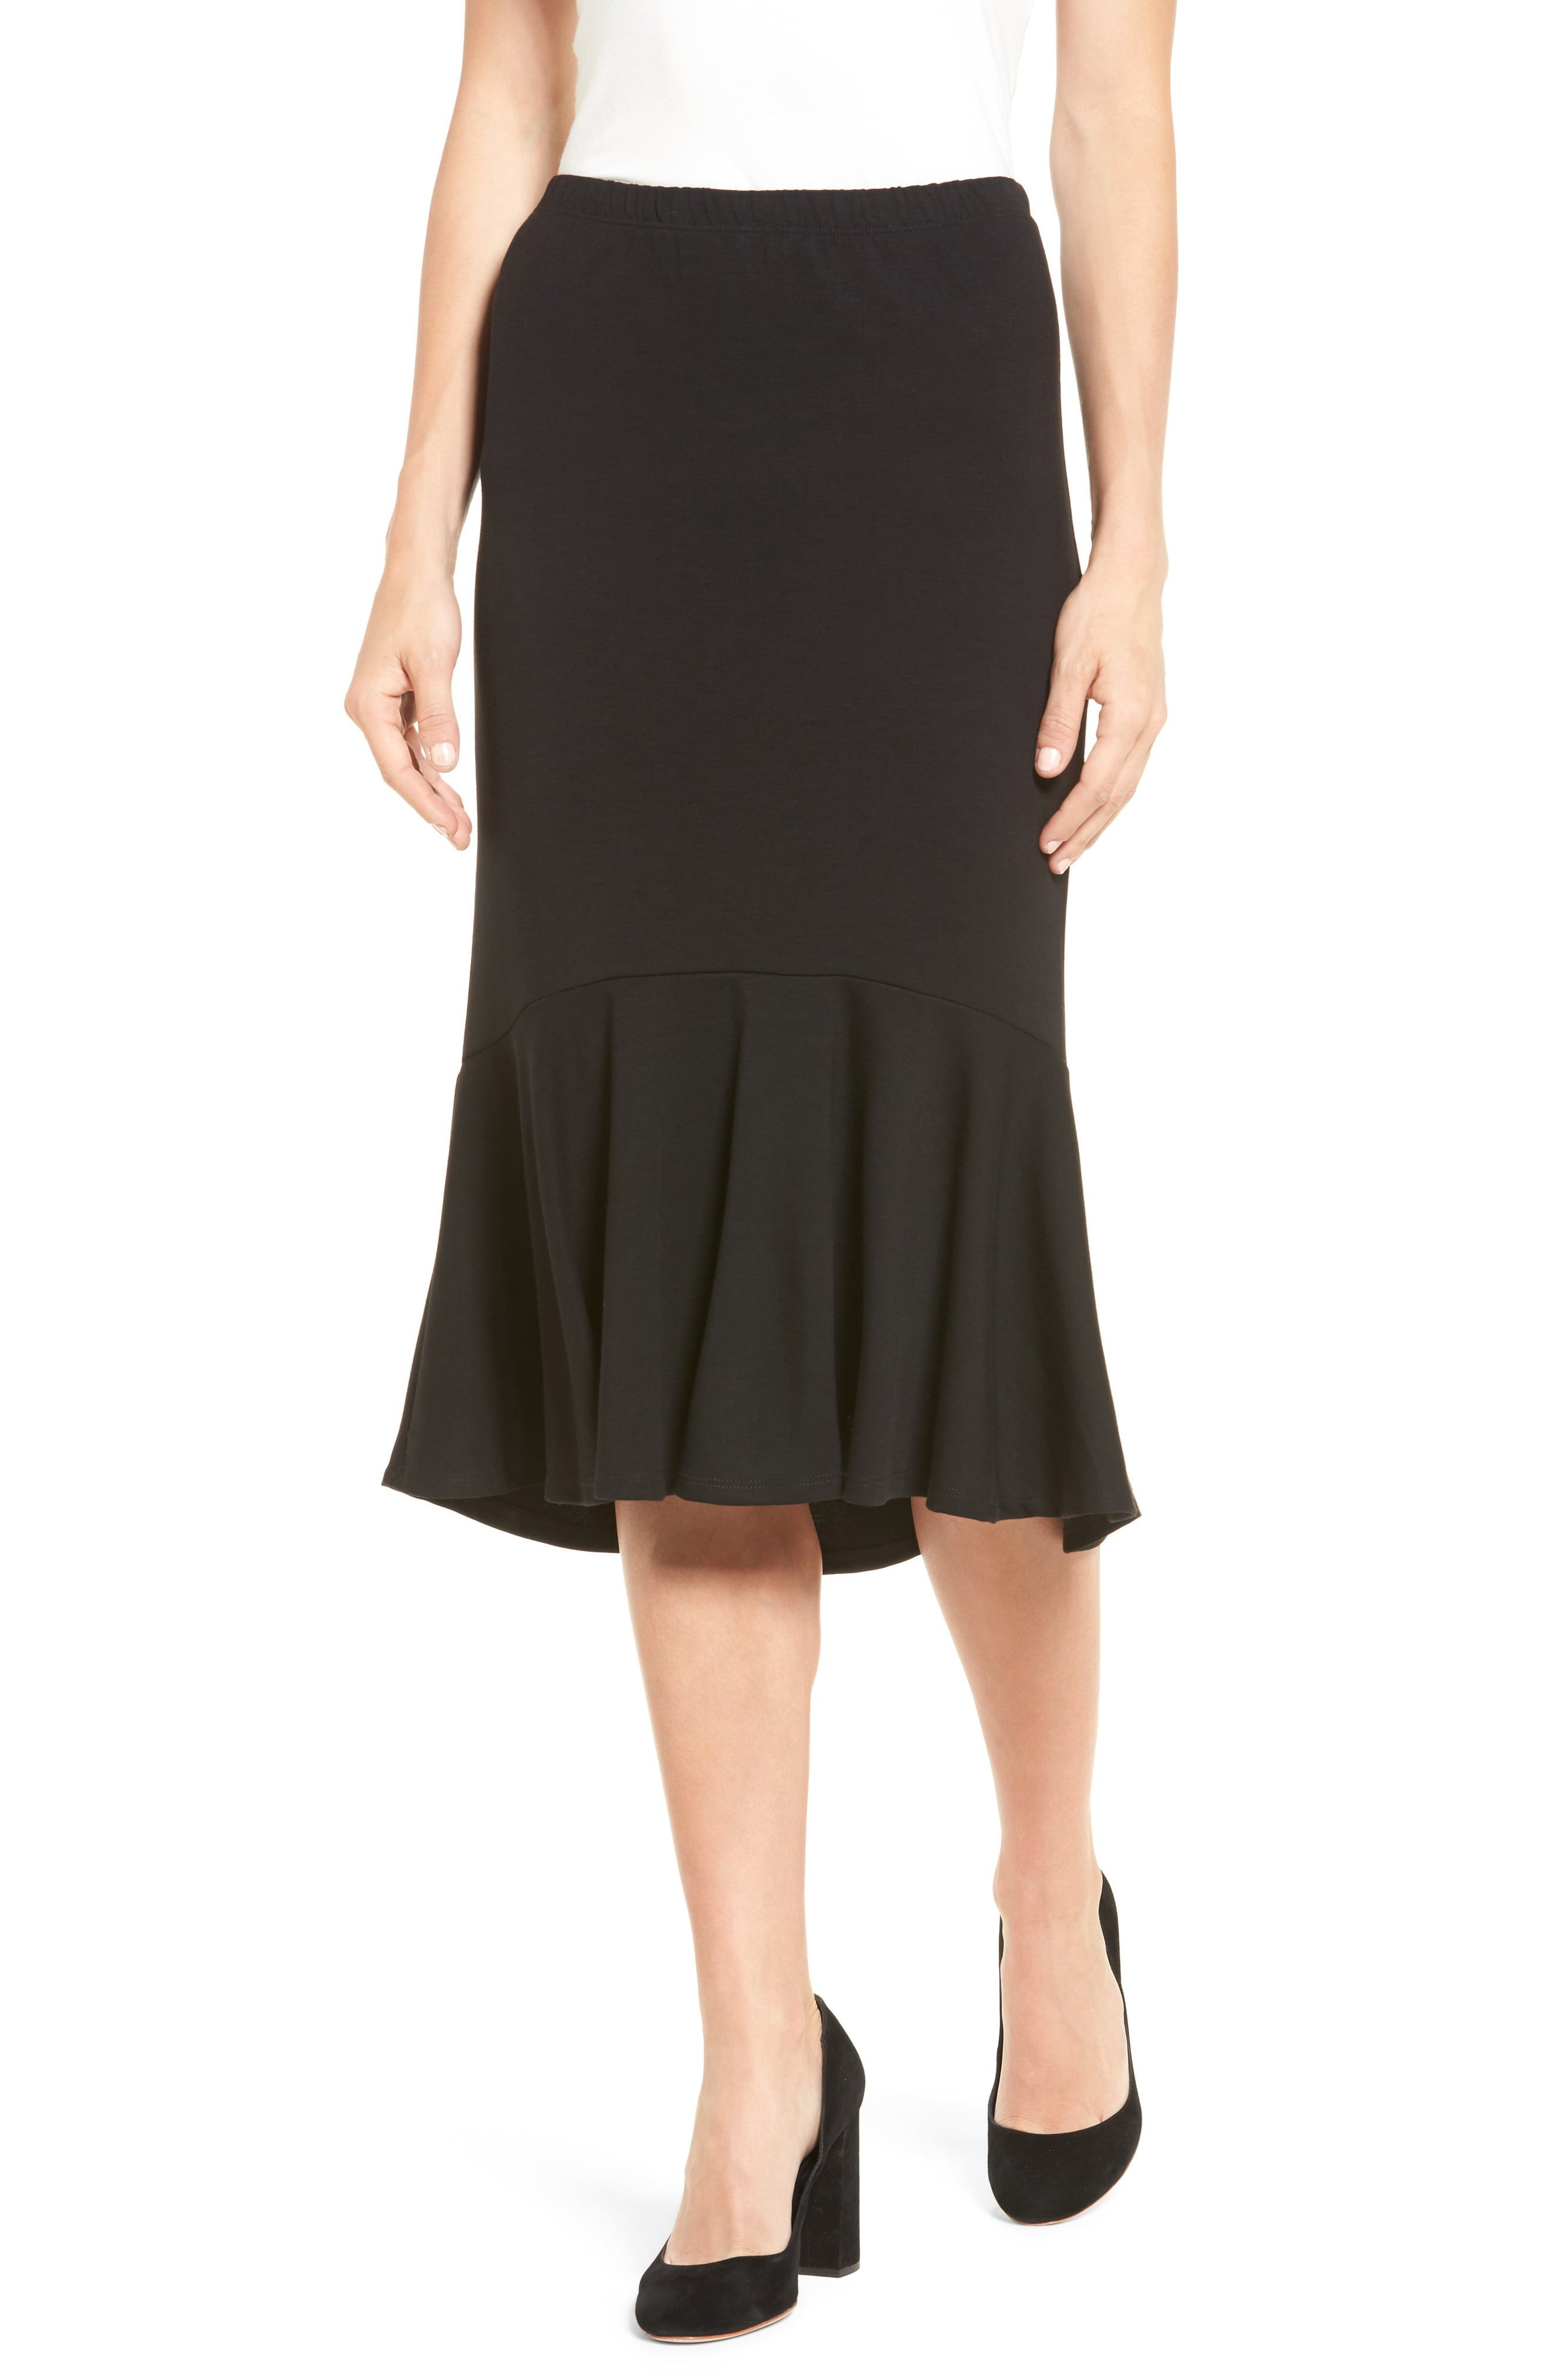 Fox and friends mega deals and steals - Best Skirts Of The Nordstrom Anniversary Sale